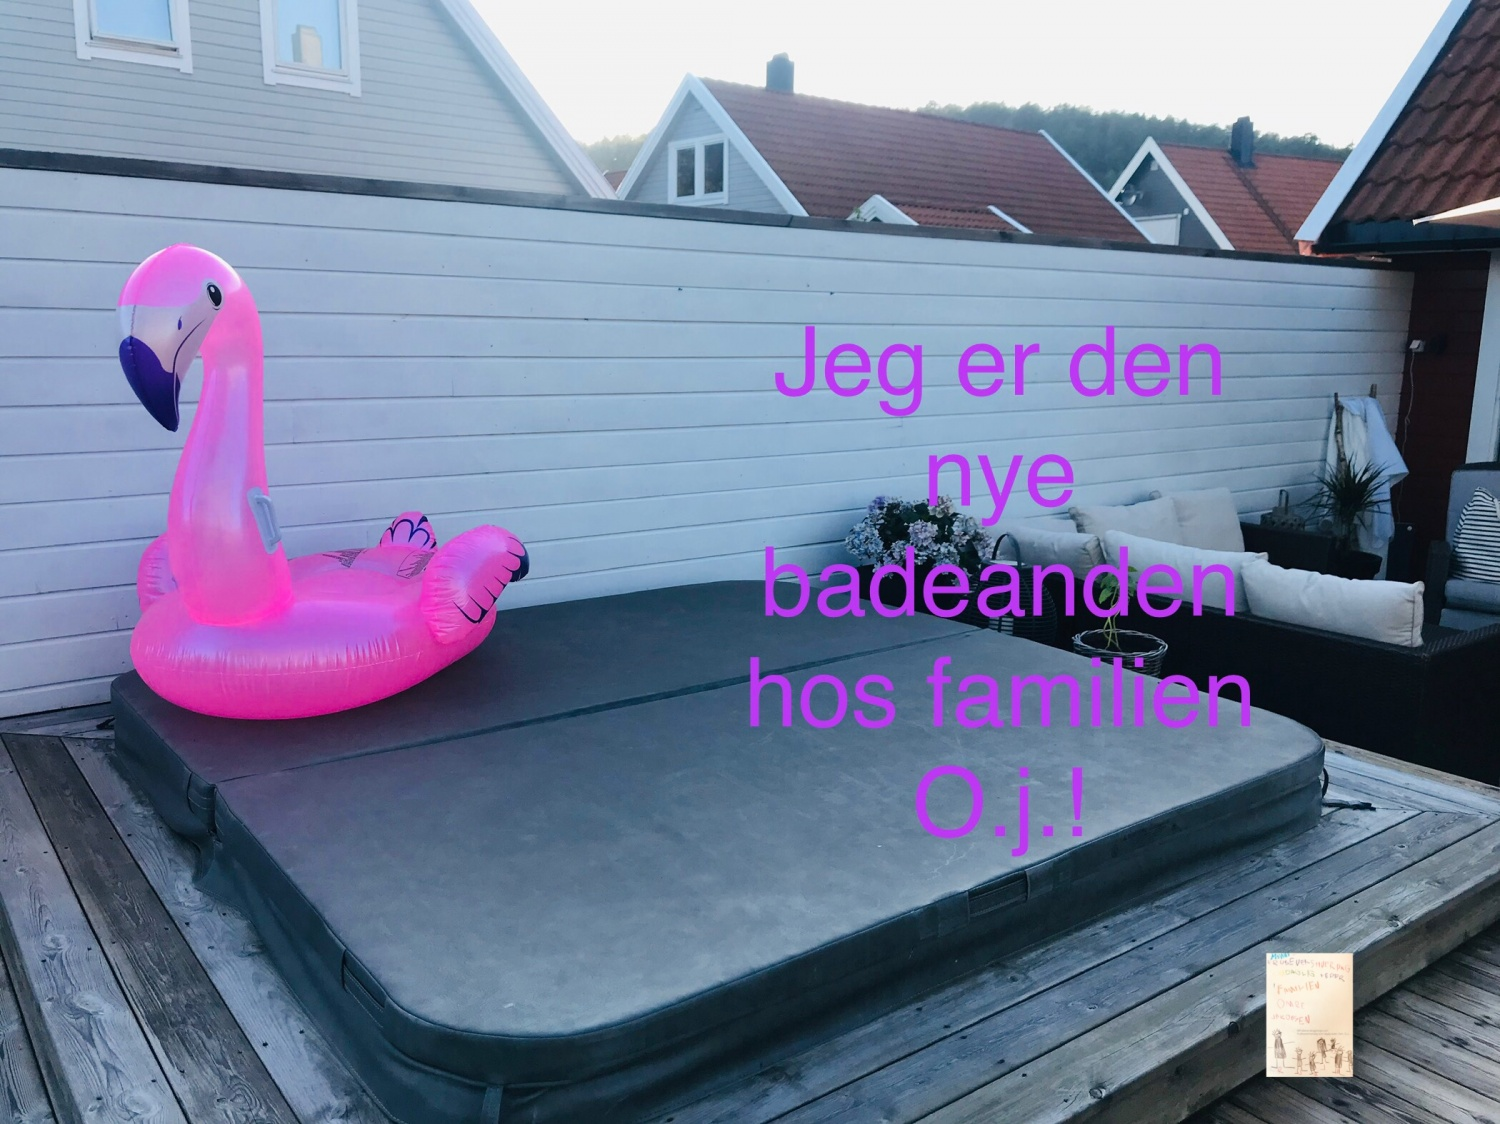 Flamingo i boblebadet @ the O.j.'s